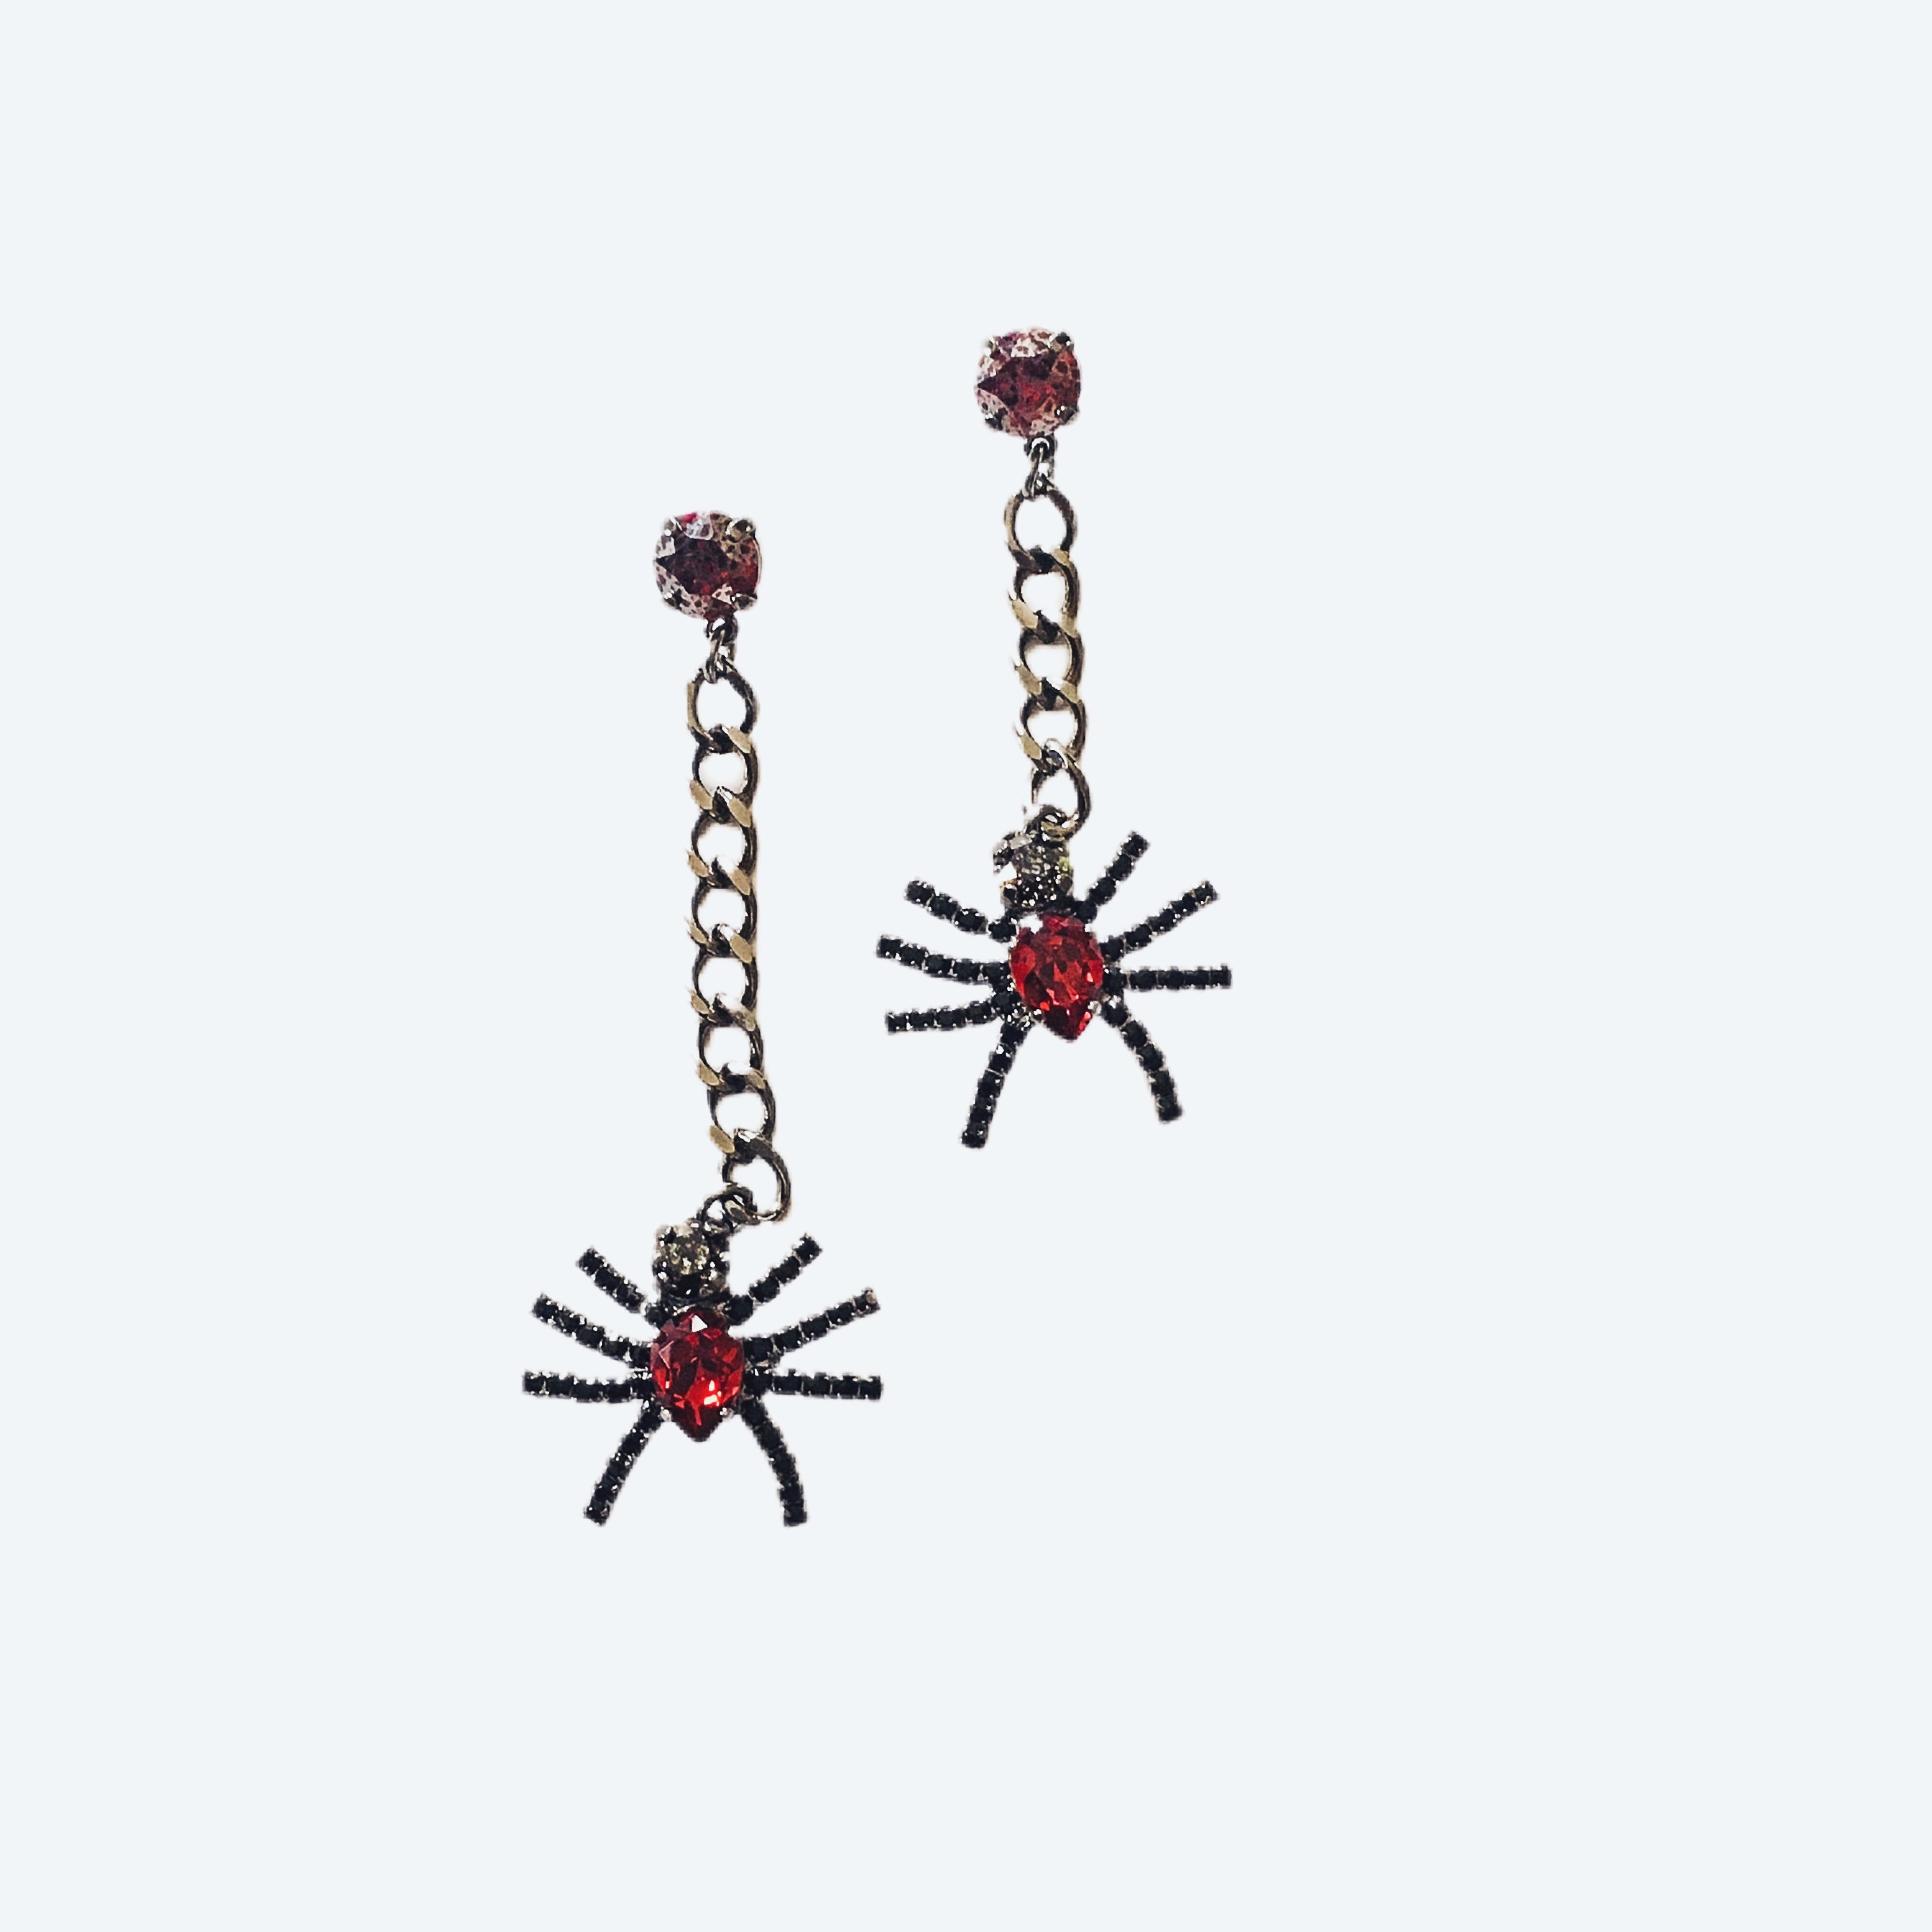 Itsy Bitsy Spider Earrings